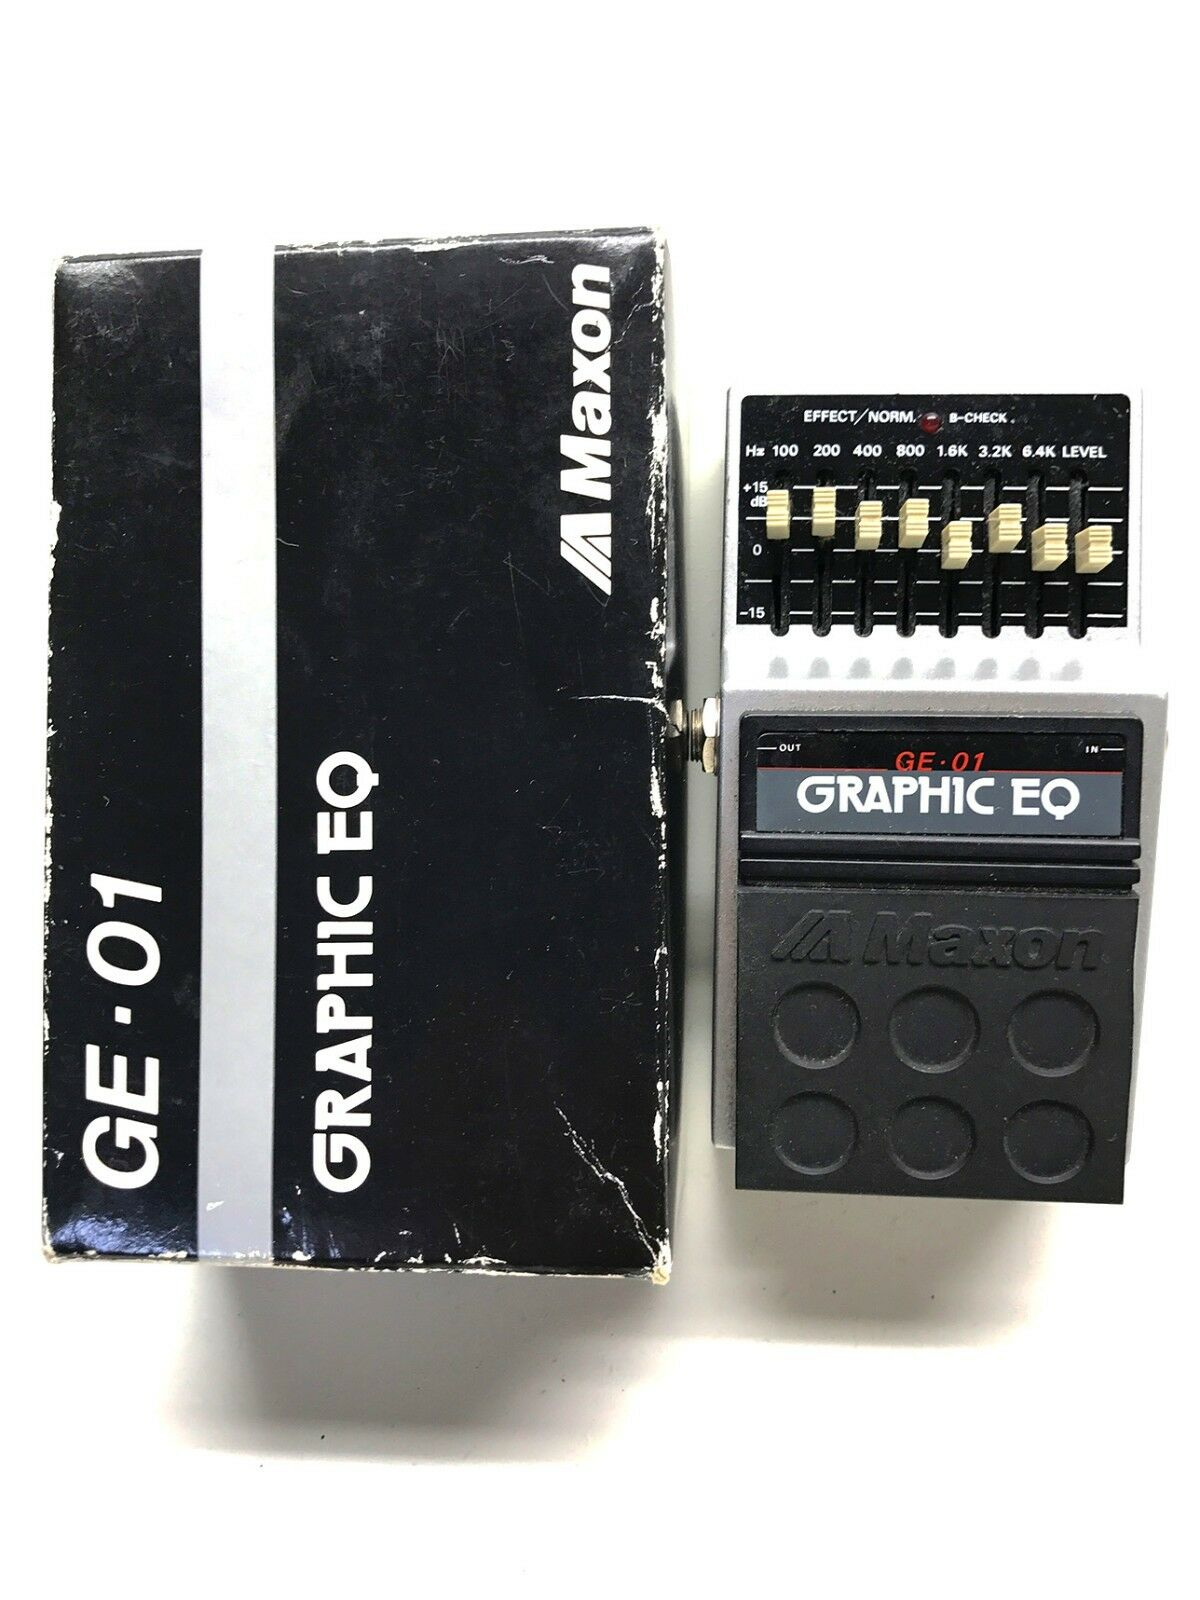 Maxon GE-01, Graphic EQ, Made In Japan, 80'S, Original Boxing, Guitar Effect